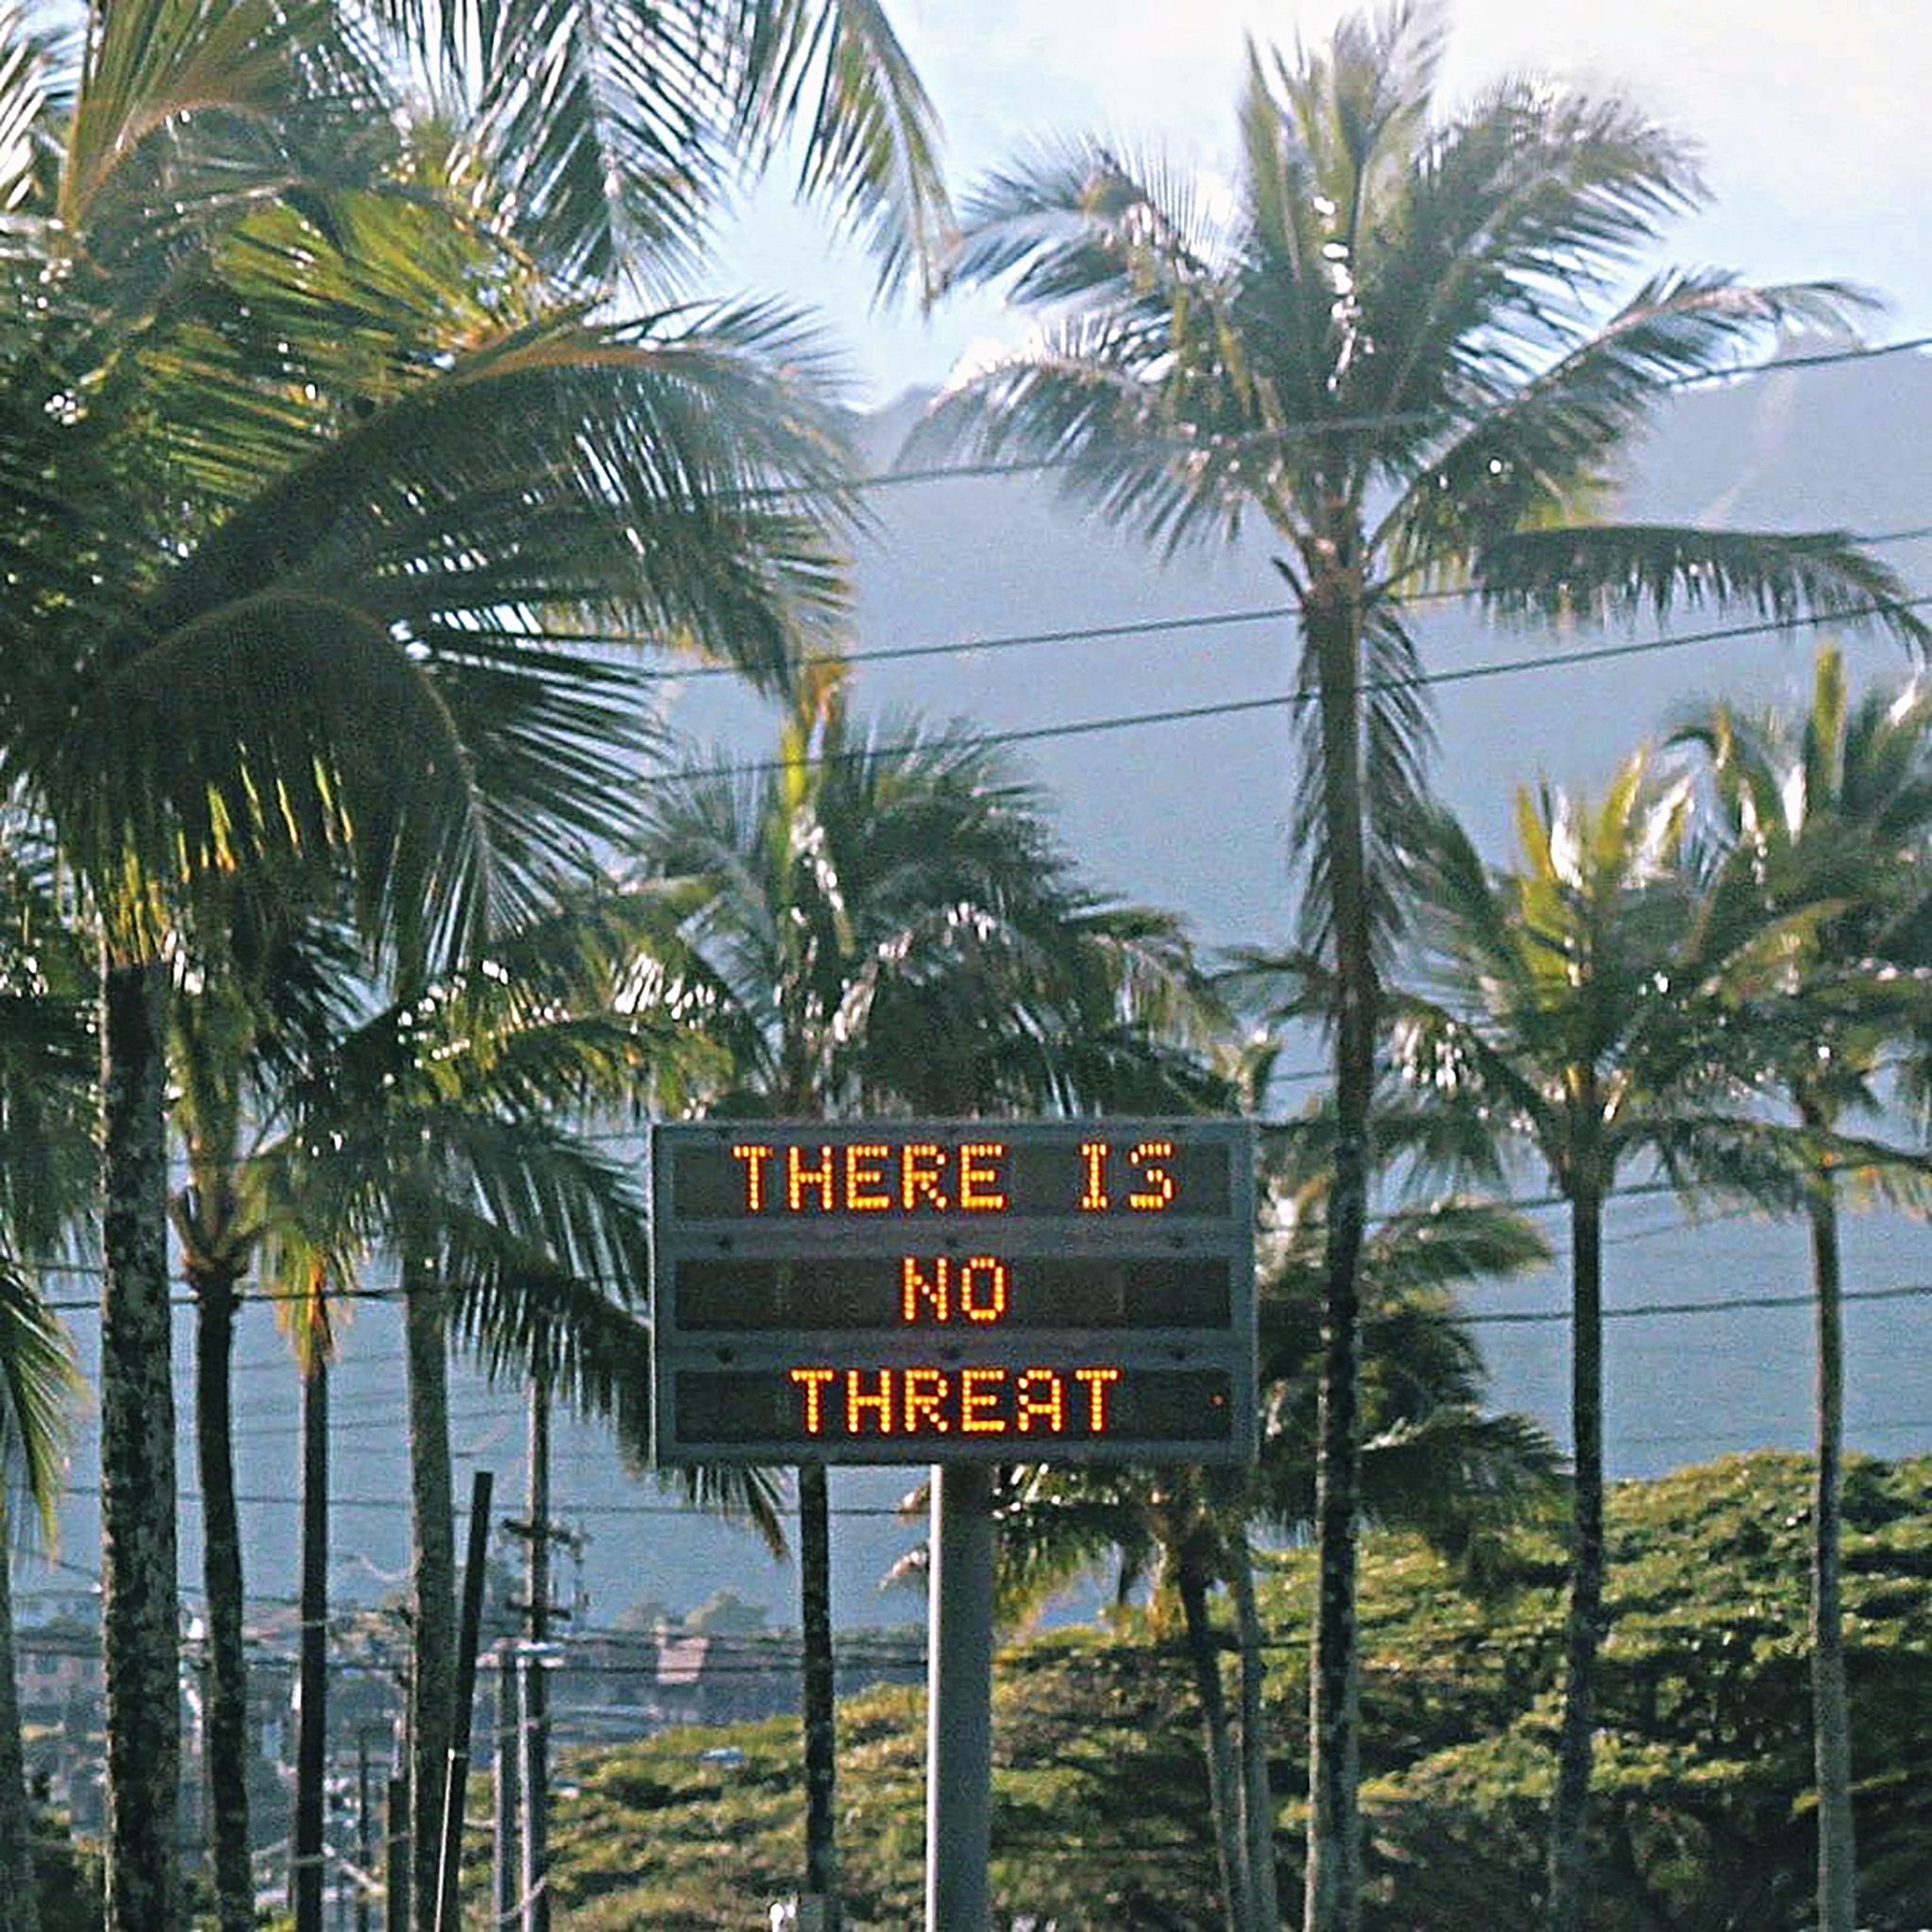 An electronic sign on the Hawaiian island of Oahu attempts to allay fears about a missile threat